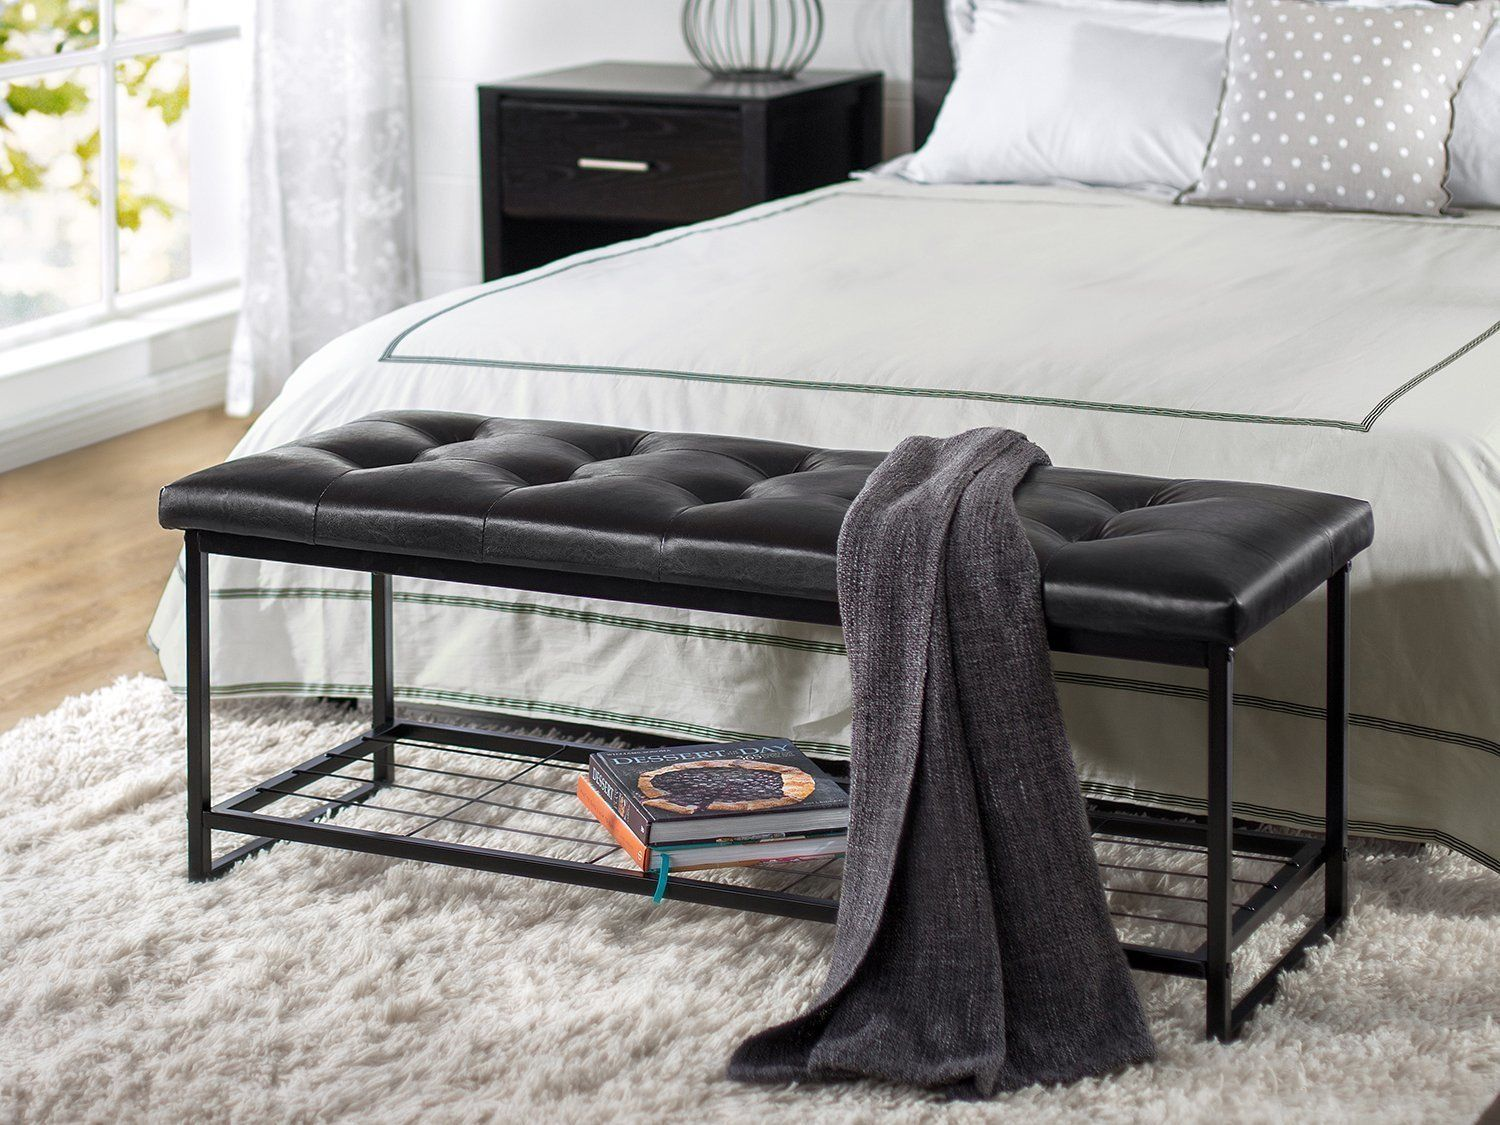 Entryway Storage Bench Bed End Seat Modern Bedroom Furniture Faux Leather Black Storage Bench Bedroom Bed Bench Storage Storage Bench